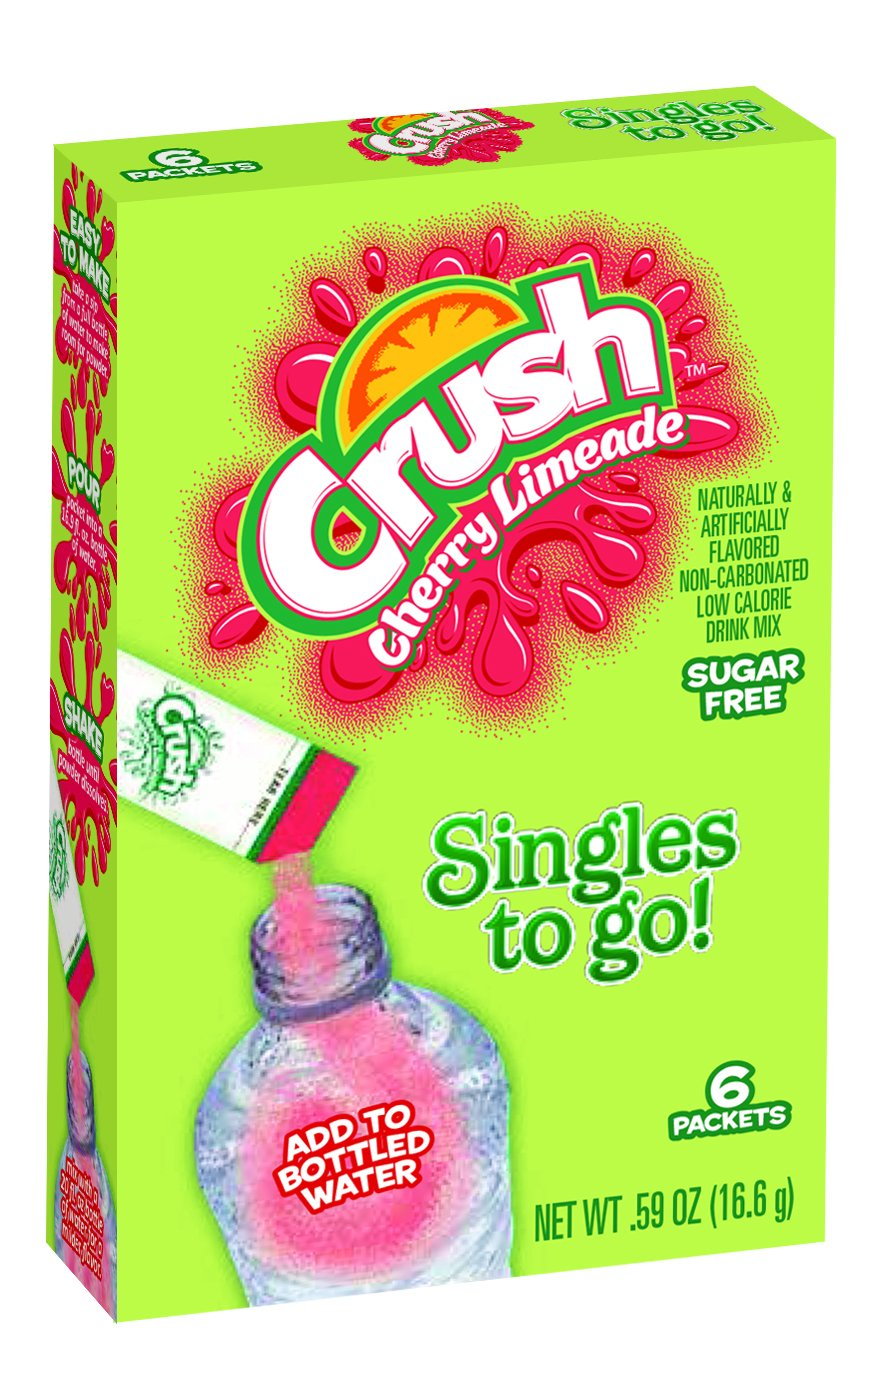 Crush Singles To Go Powder Packets, Water Drink Mix, Cherry Limeade, Non-Carbonated, Sugar Free Sticks (12 Boxes with 6 Packets Each - 72 Total Servings) - ORIGINAL FLAVOR